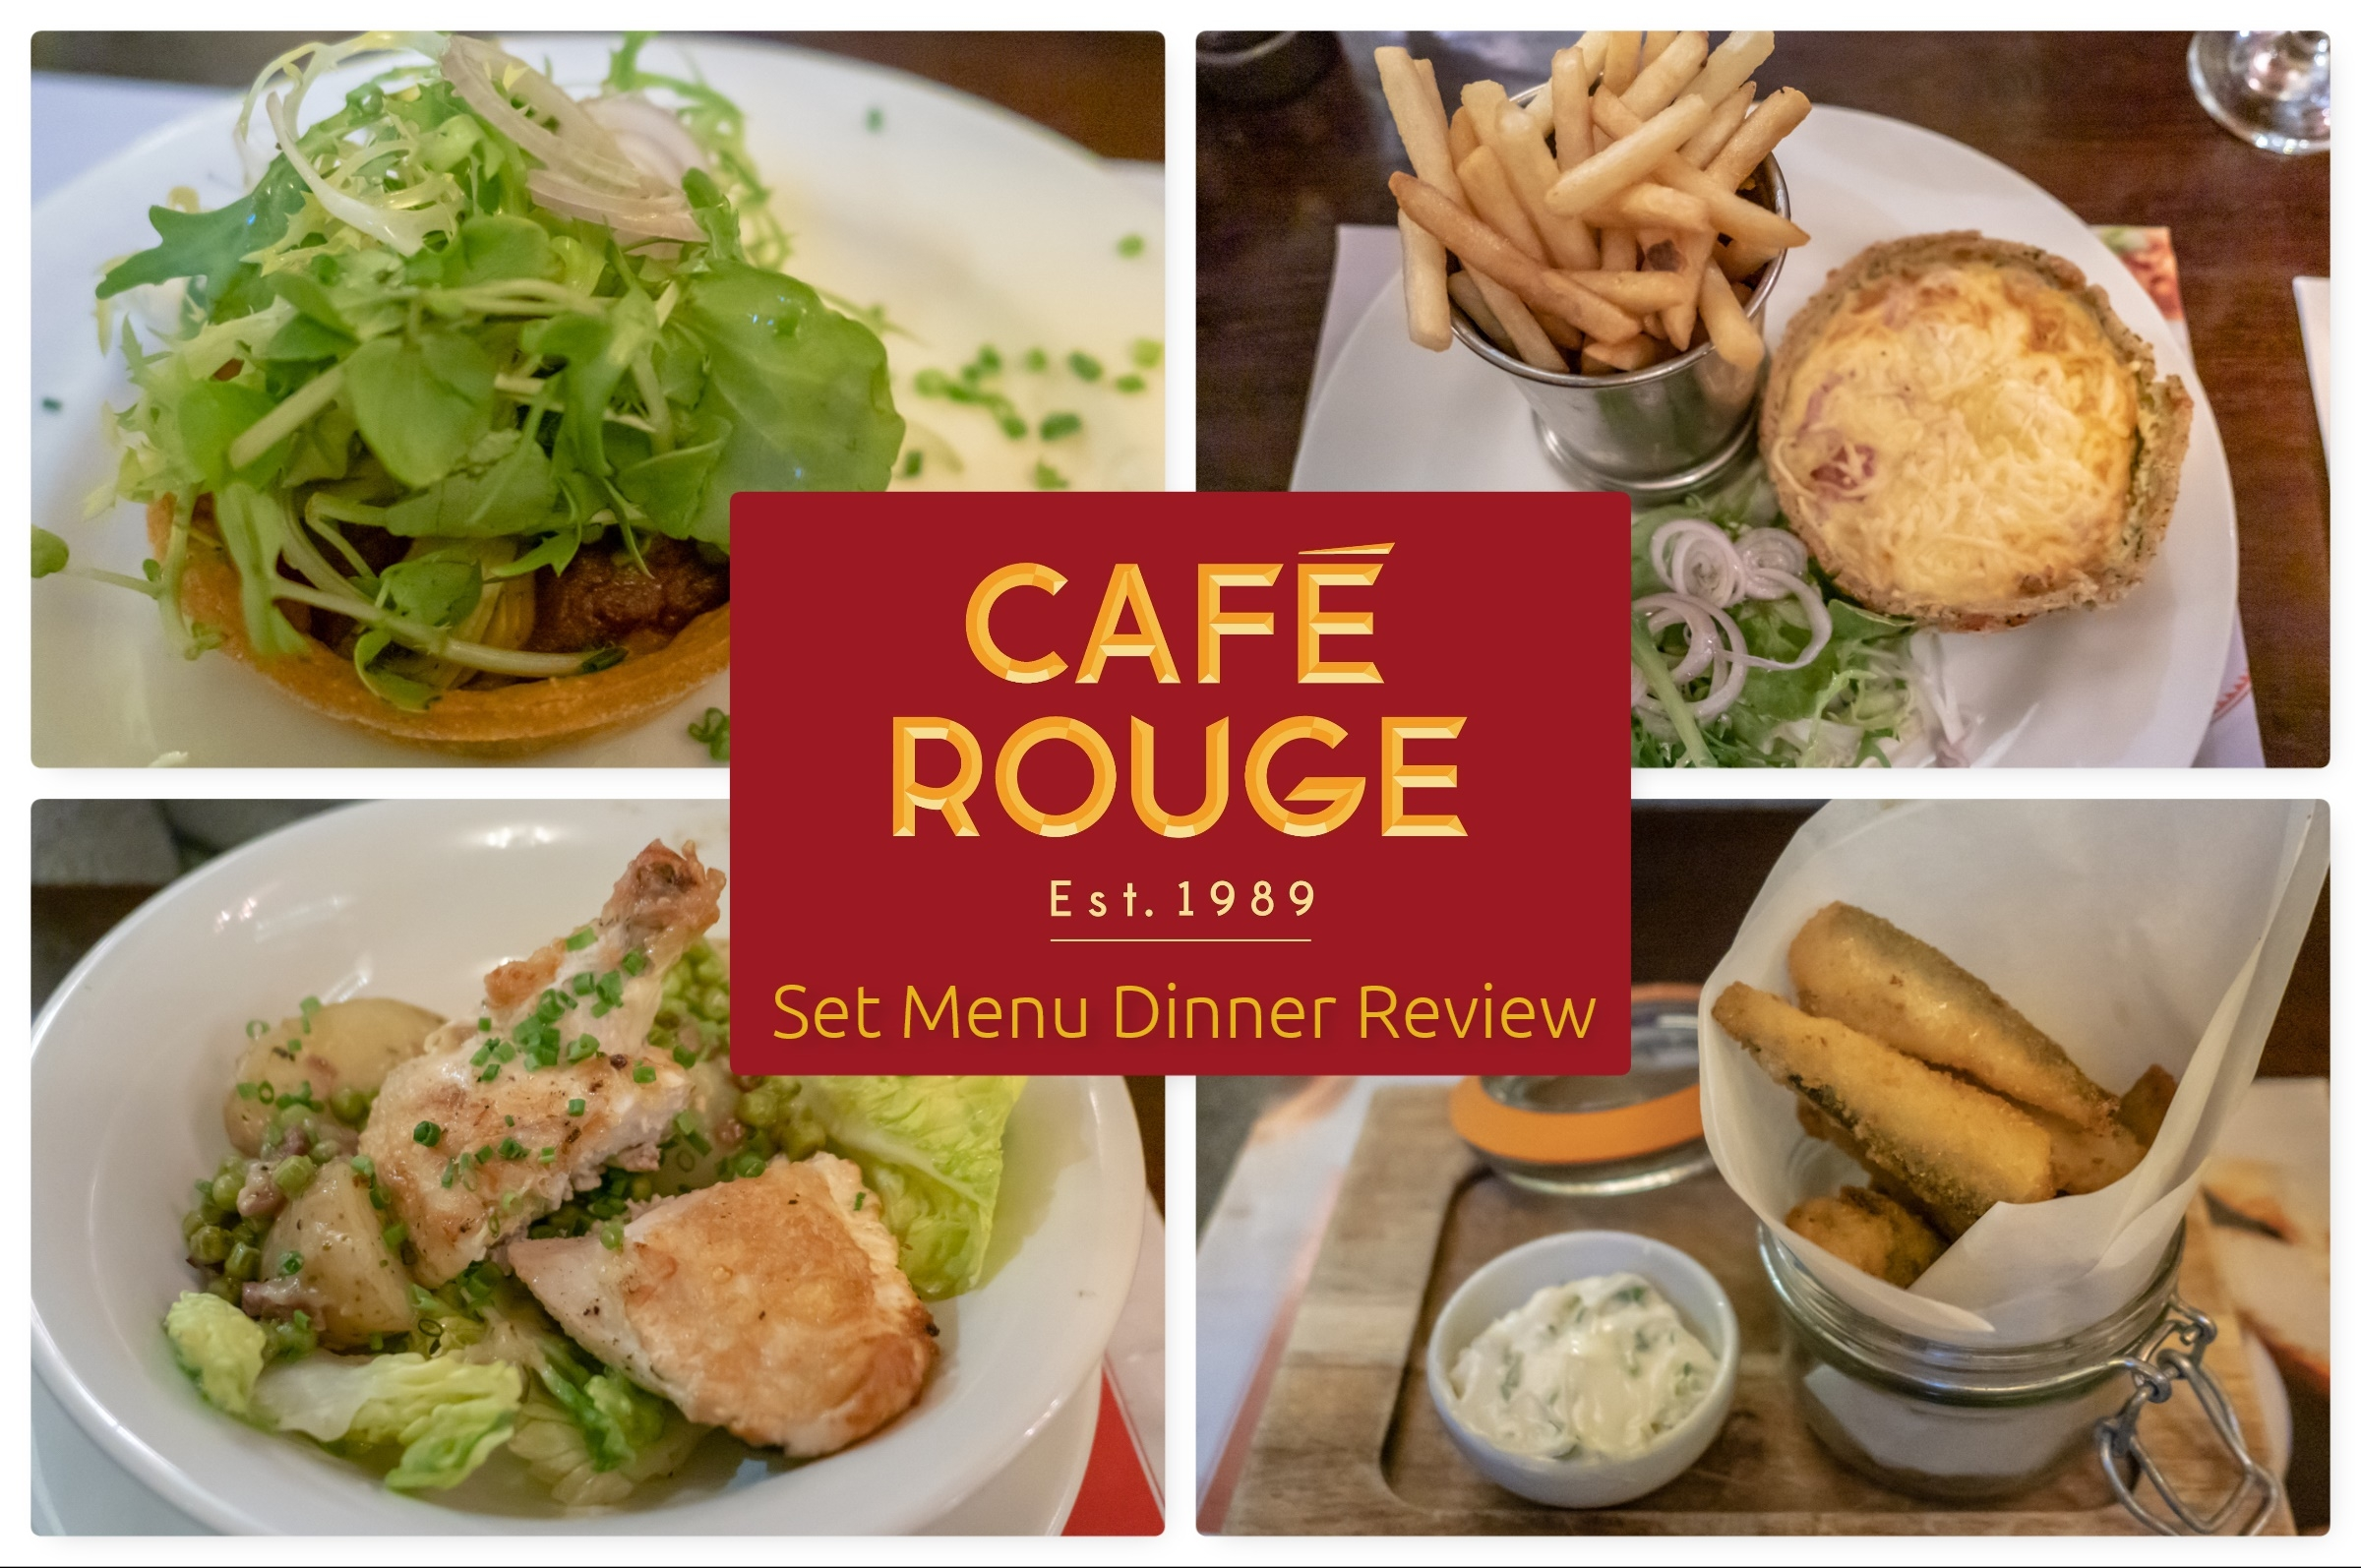 3 course dinner at Café Rouge for £18.95? Read our review